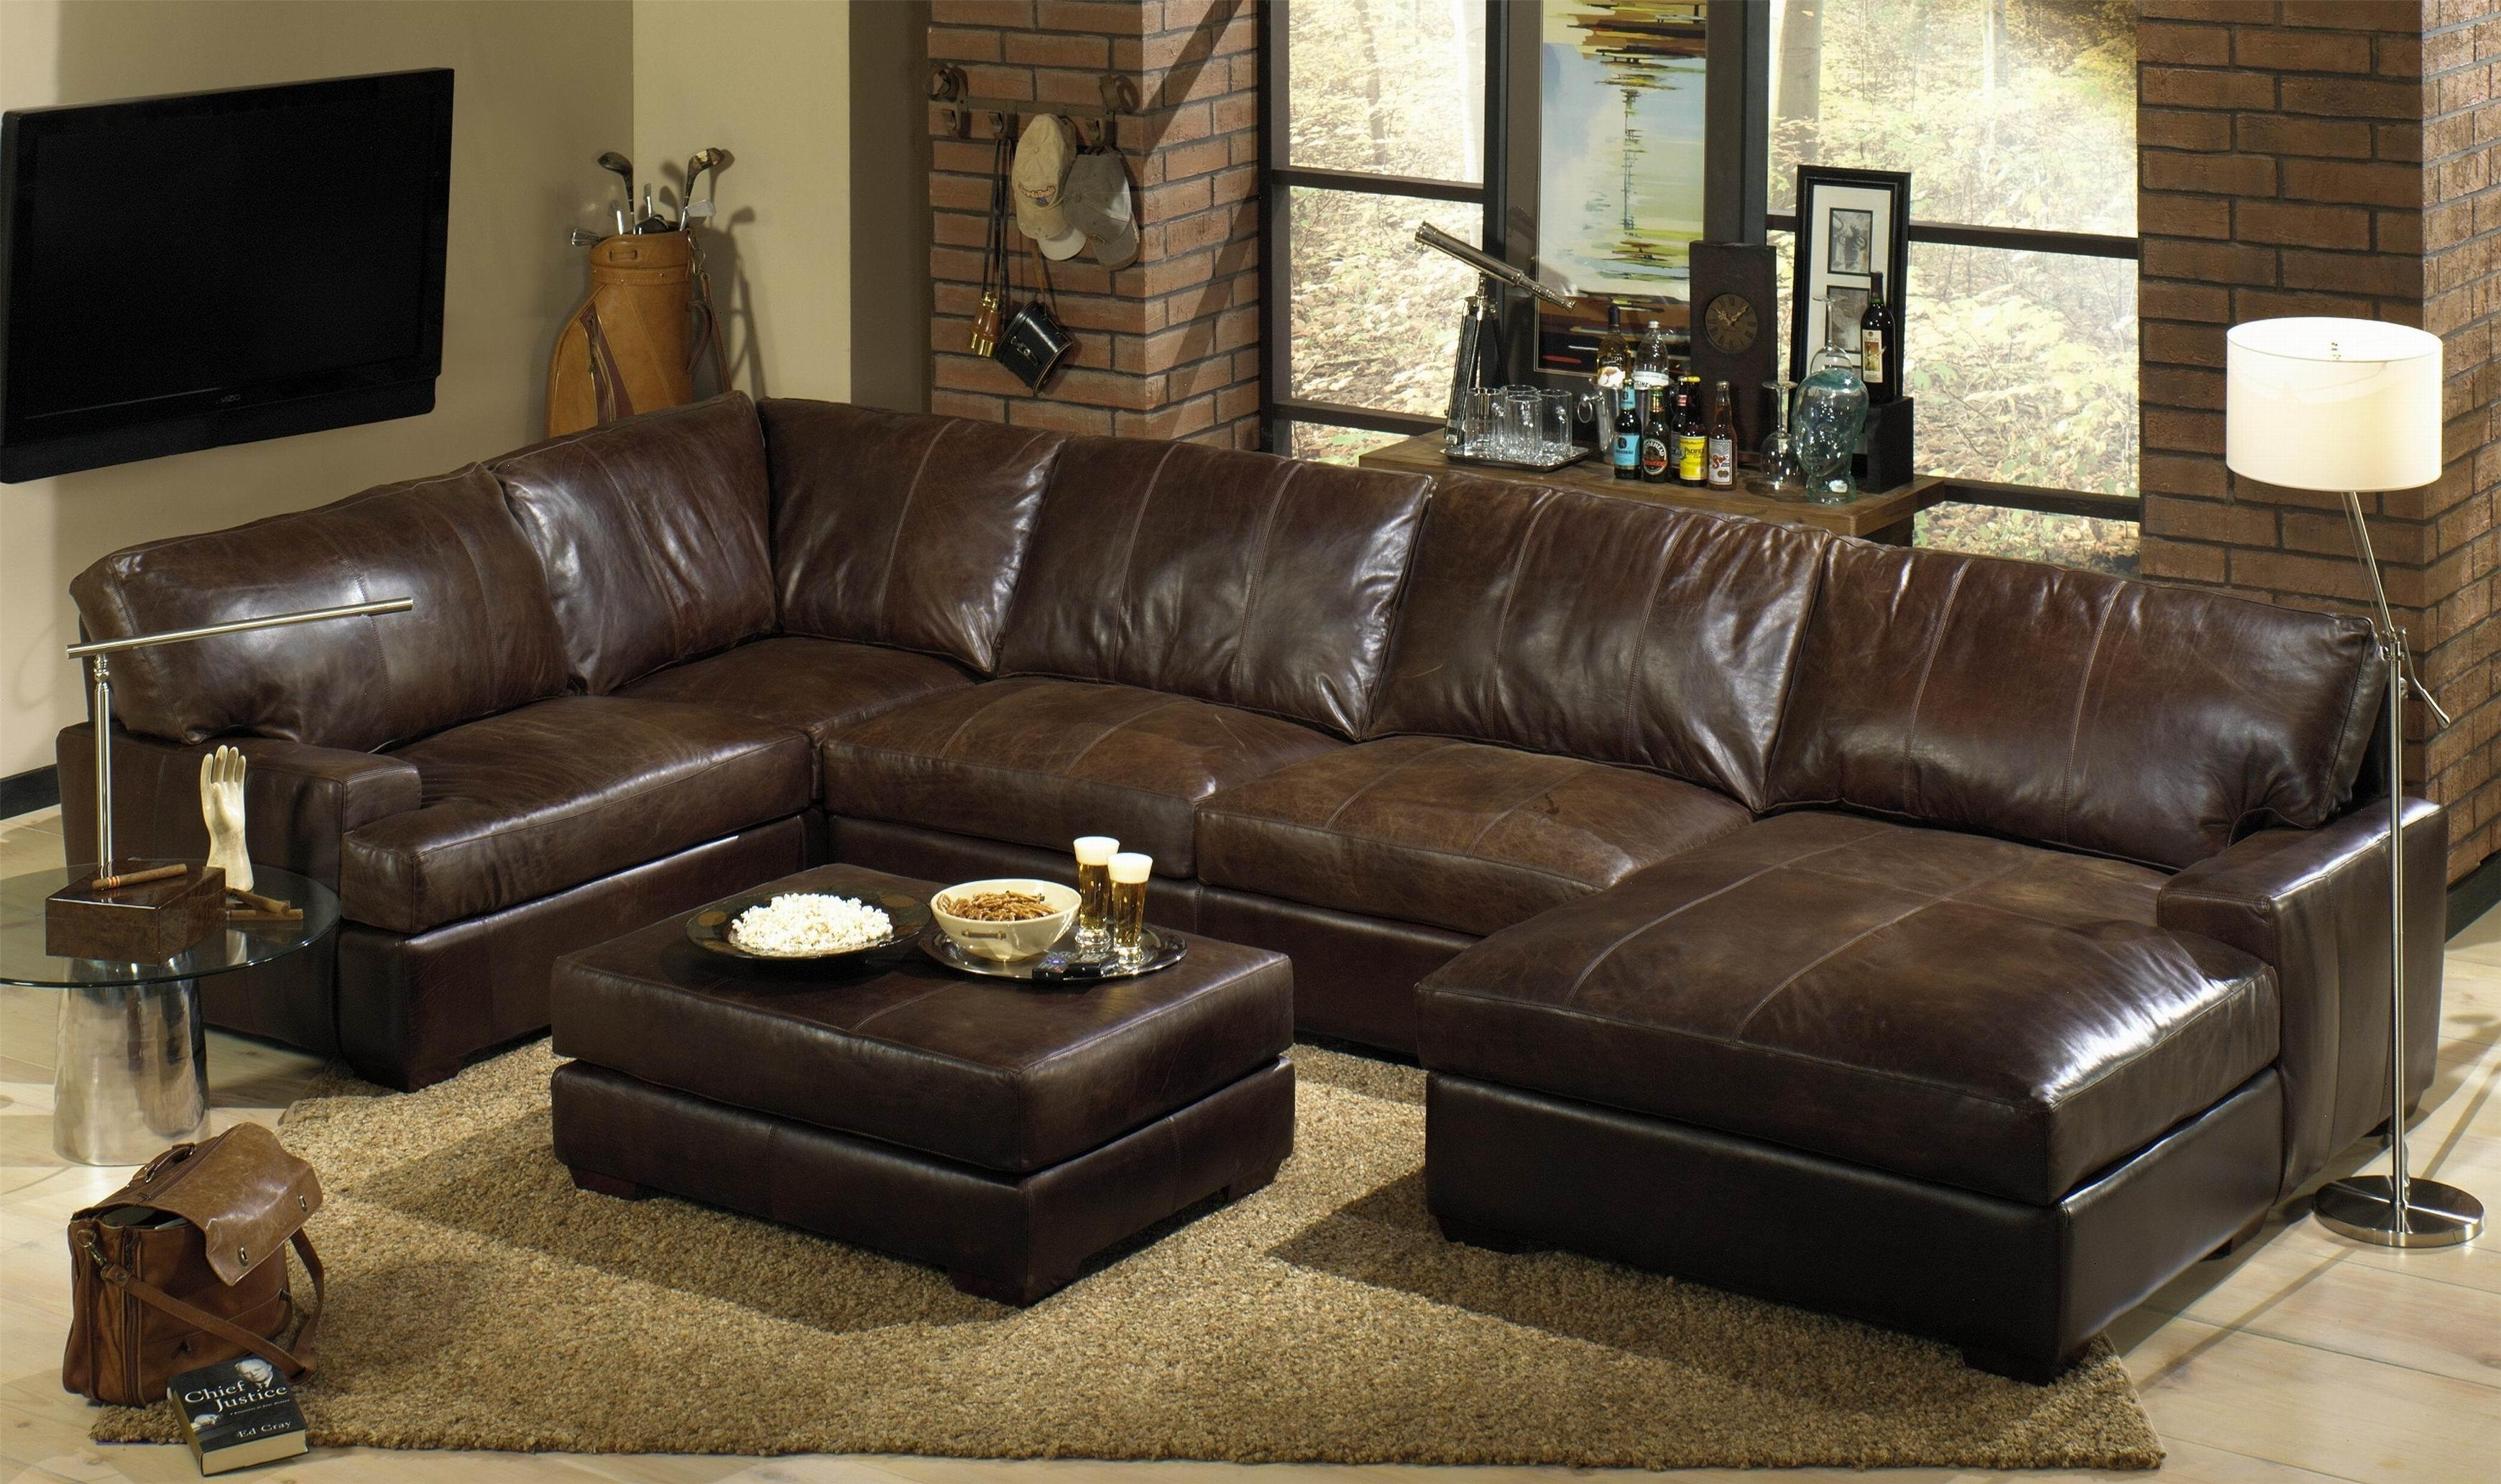 Top Leather Motion Sectional Sofa Ideas Caruso Piece Power Chaise 2 Intended For Leather Motion Sectional Sofas (View 7 of 10)